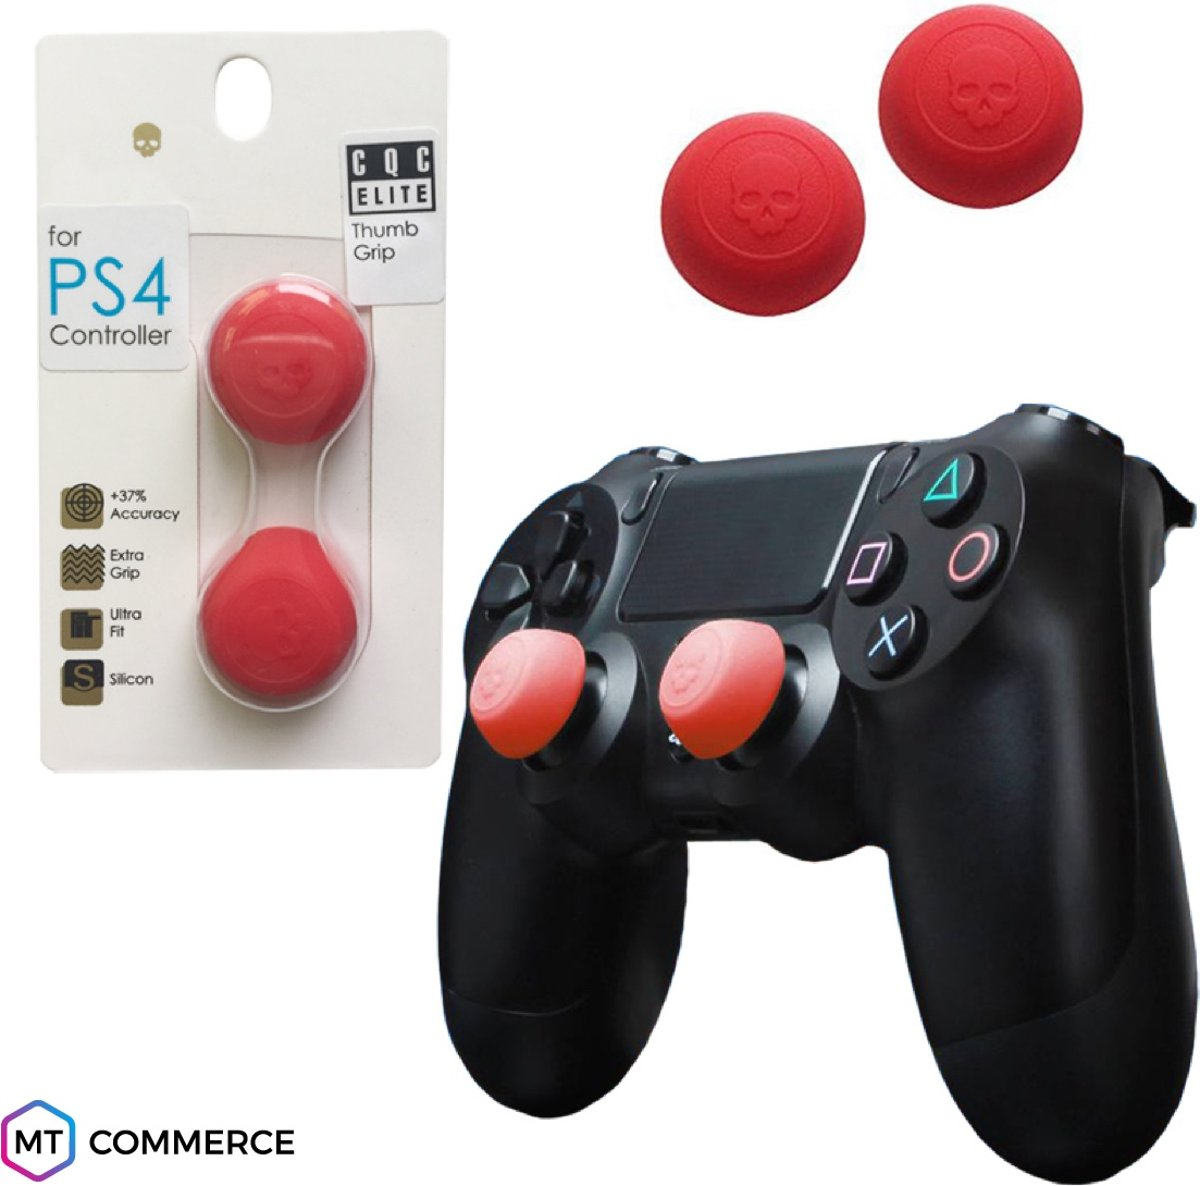 Skull & Co CQC Elite thumbsticks voor PS4 - PlayStation Controller Thumb Grips - Rood